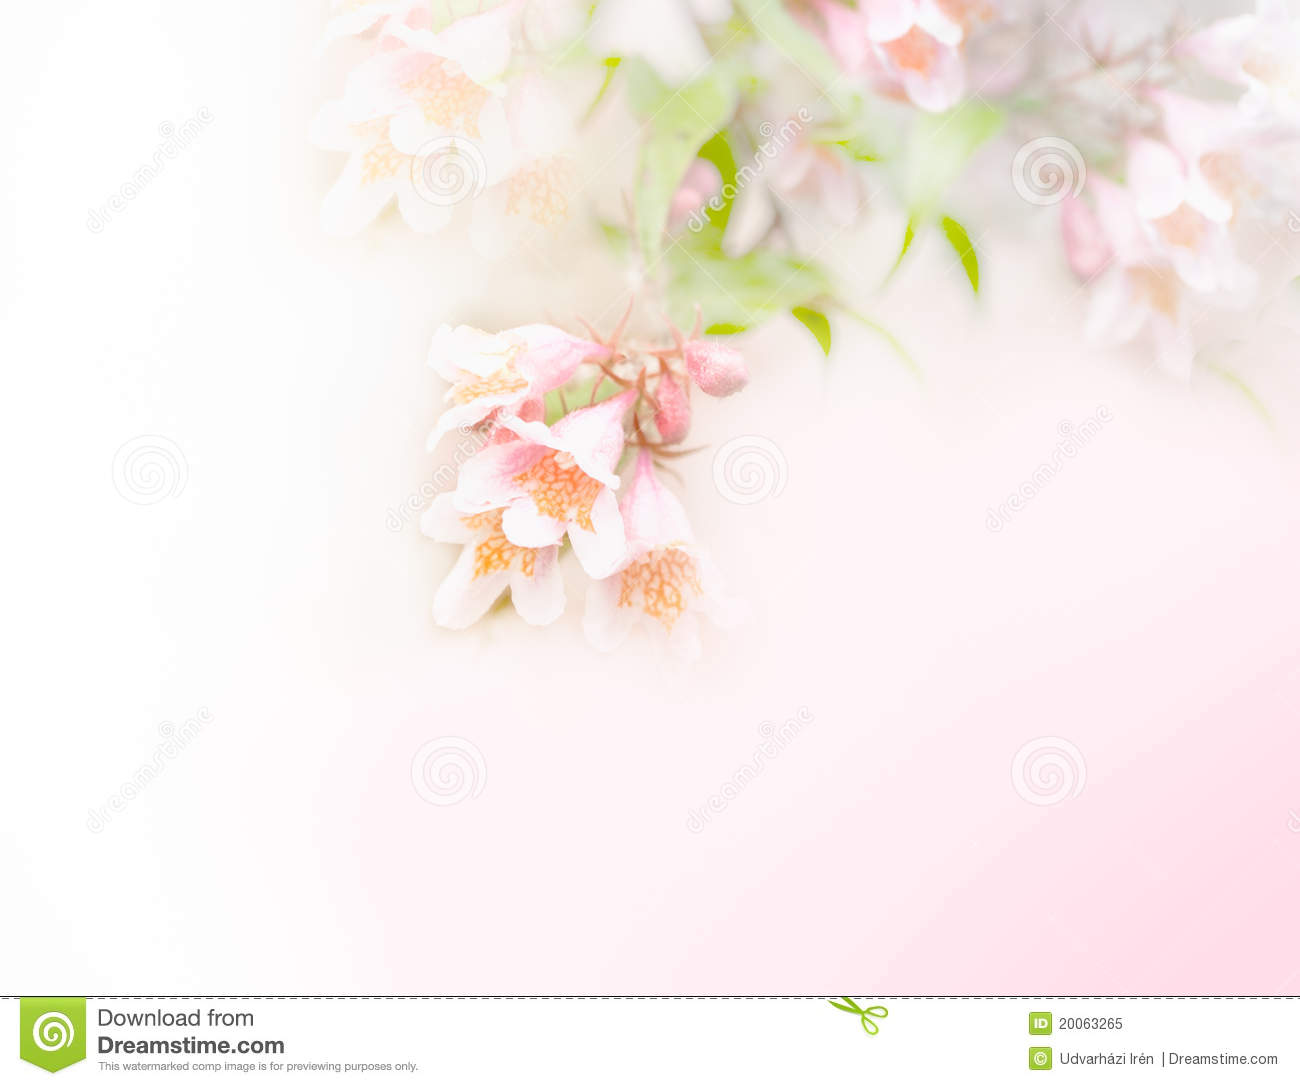 Pastel Flowers Royalty Free Stock Image